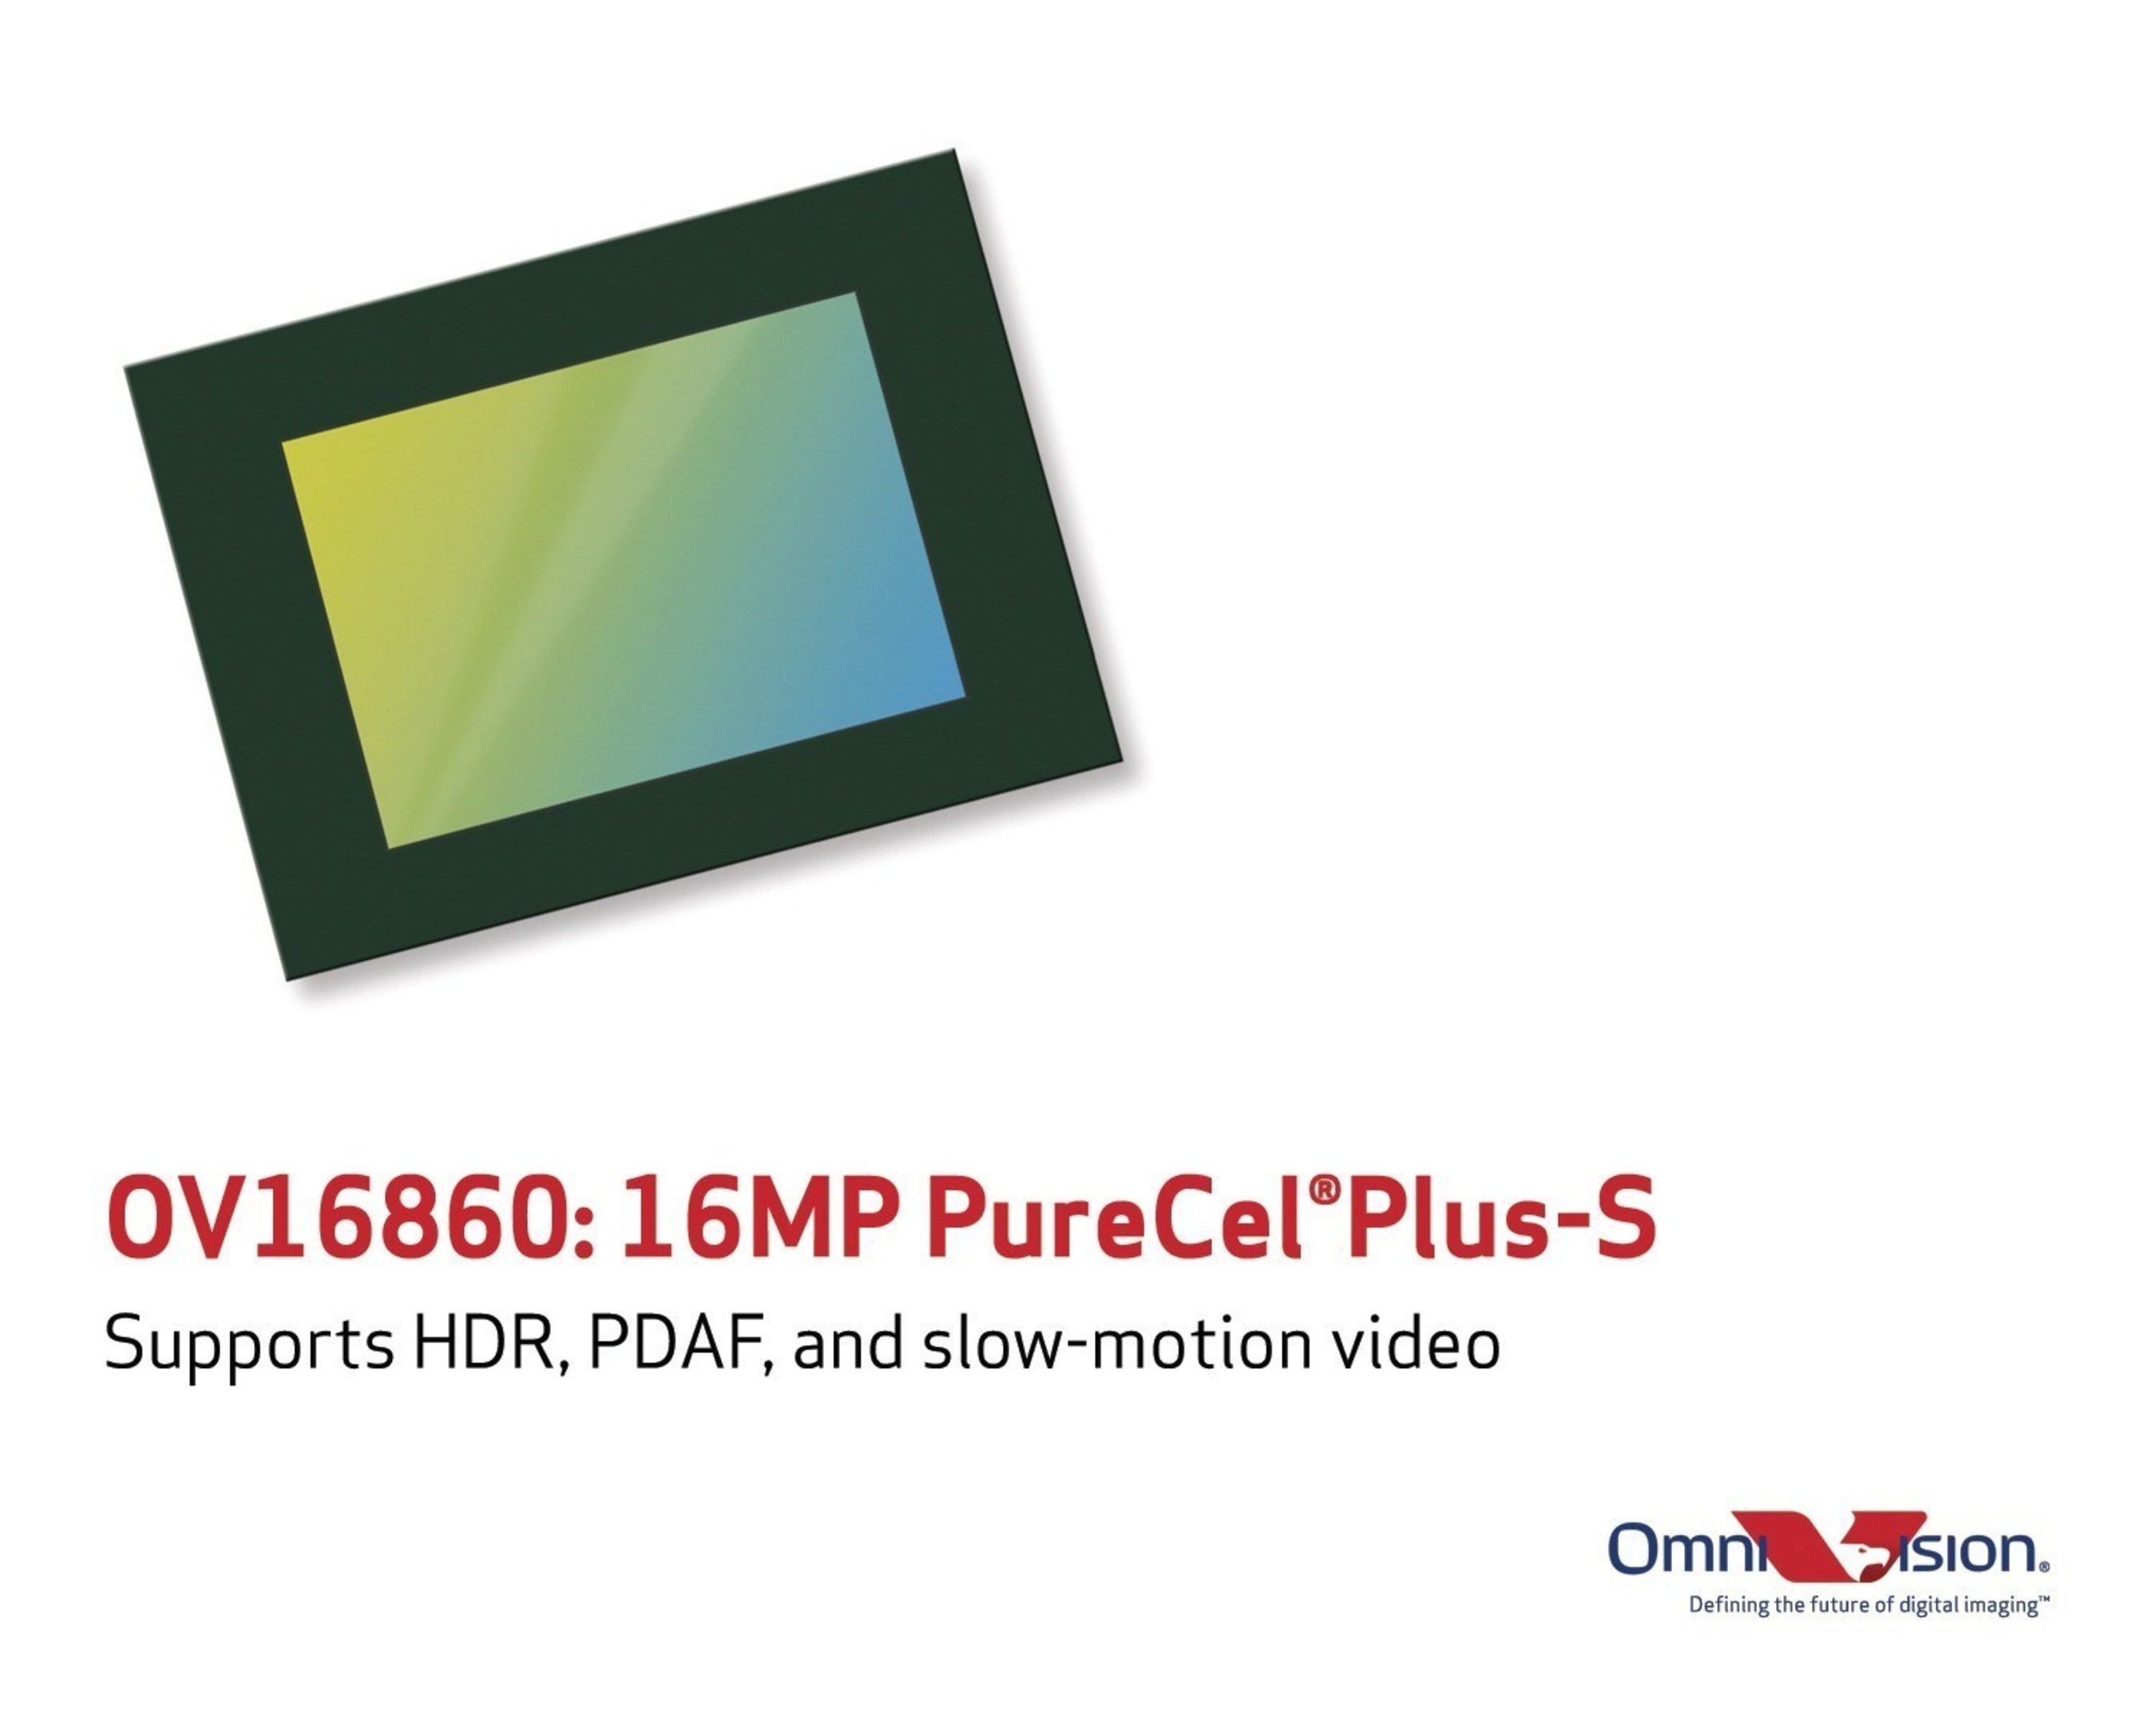 OmniVision Launches Fastest Frame Rate 16-Megapixel PureCel'Plus-S Sensor for Smartphones and Action Cameras